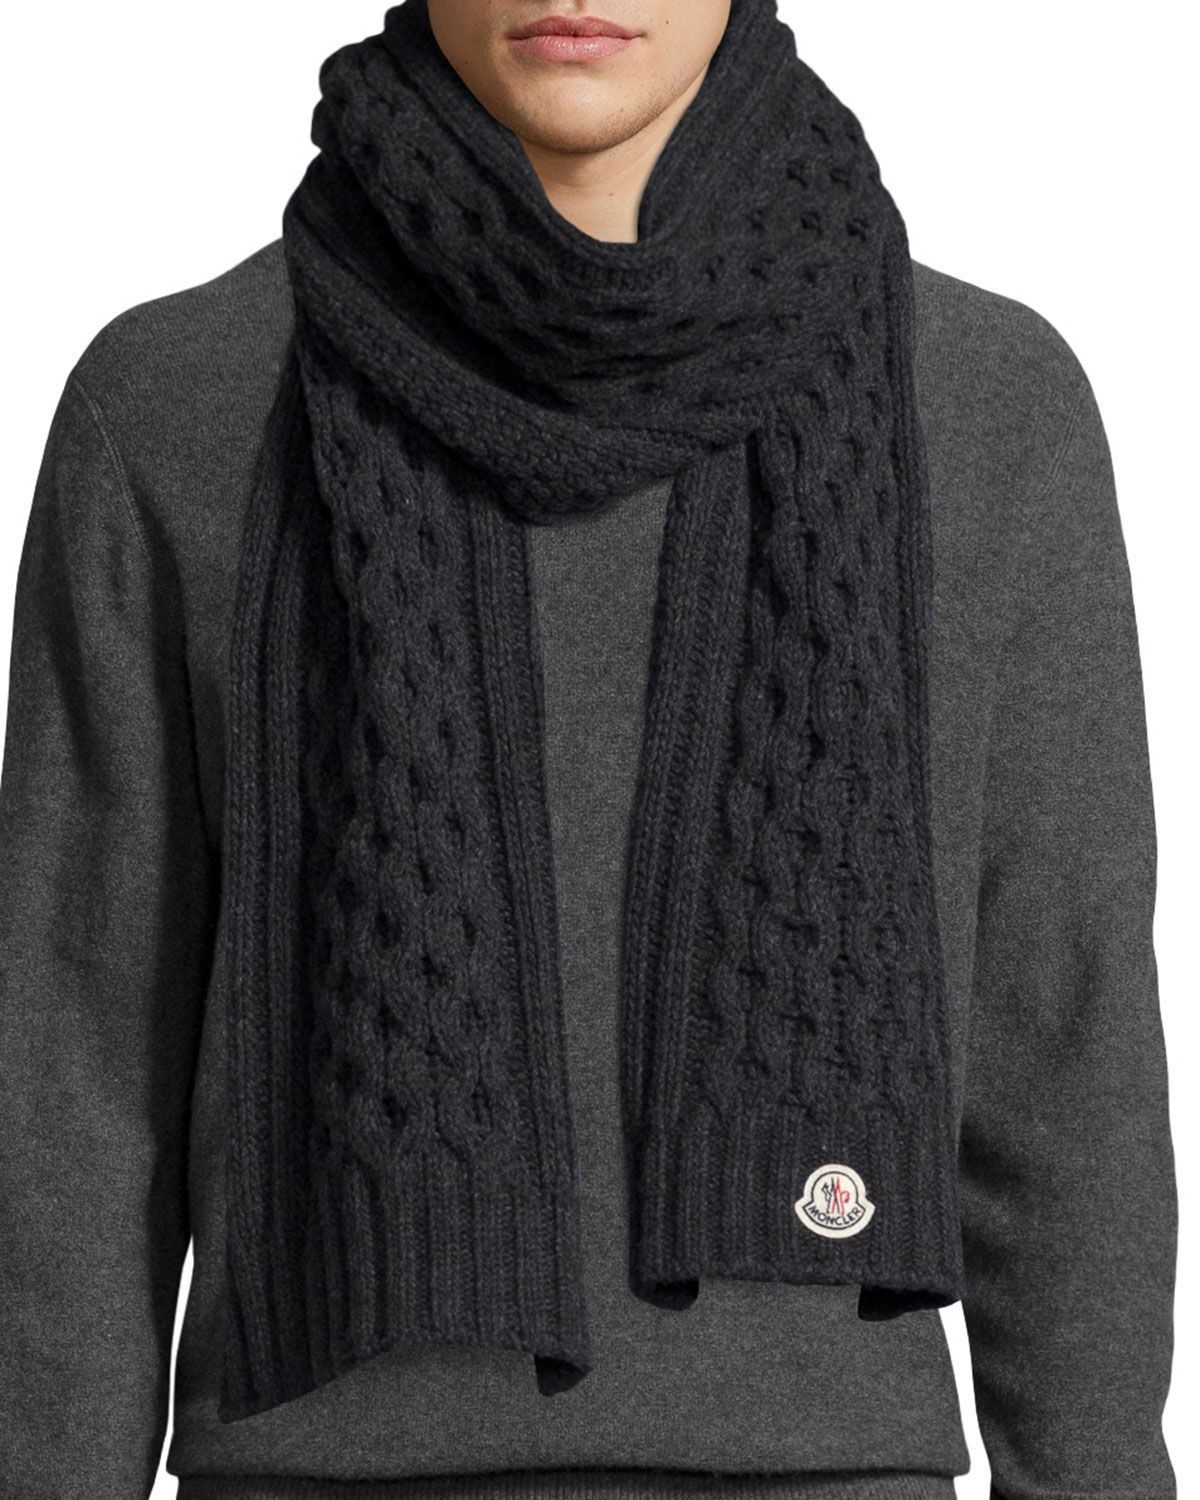 ebd820be4 Moncler cable-knit scarf. Moncler logo patch at edge. Cashmere. Made ...